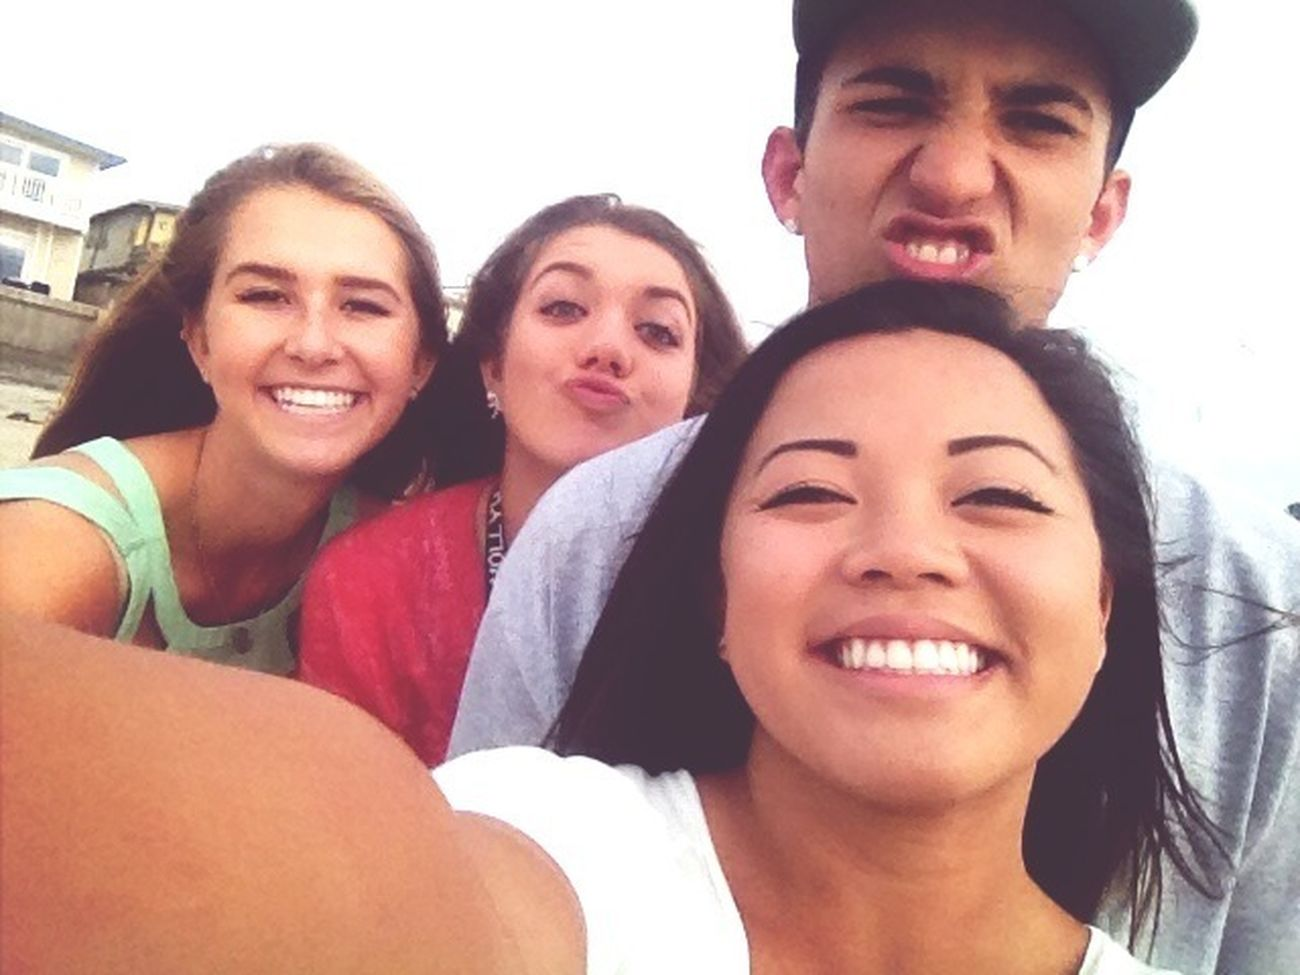 Some of my favorite people